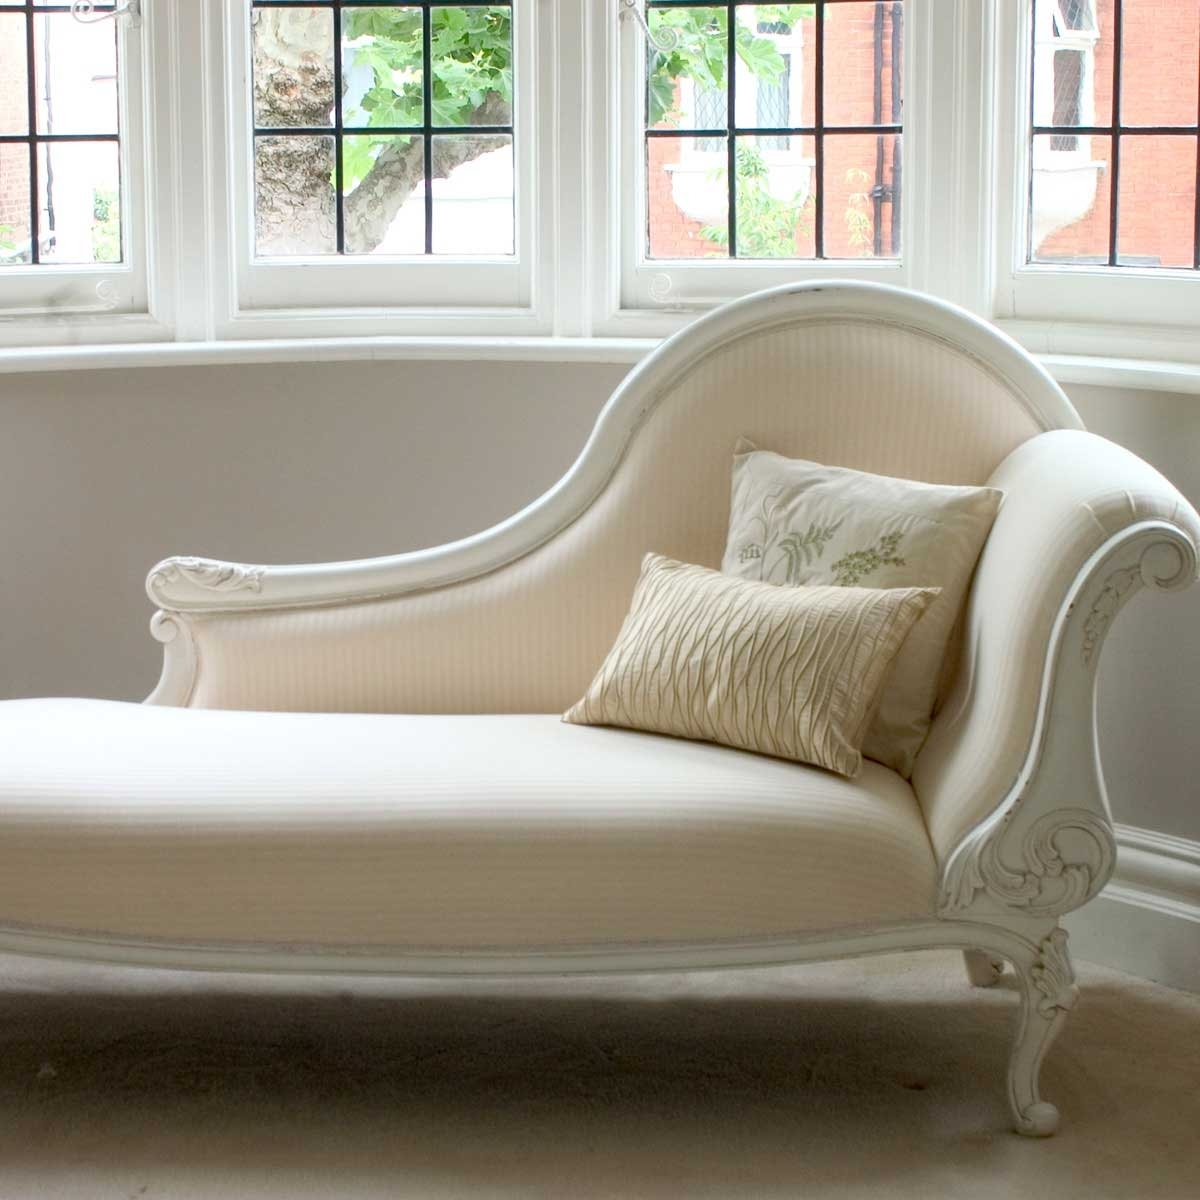 Famous Sofa : Cool Chaise Lounges For Bedrooms Bedroom Lounge Slipcovers For Cheap Chaise Lounge Chairs (View 9 of 15)